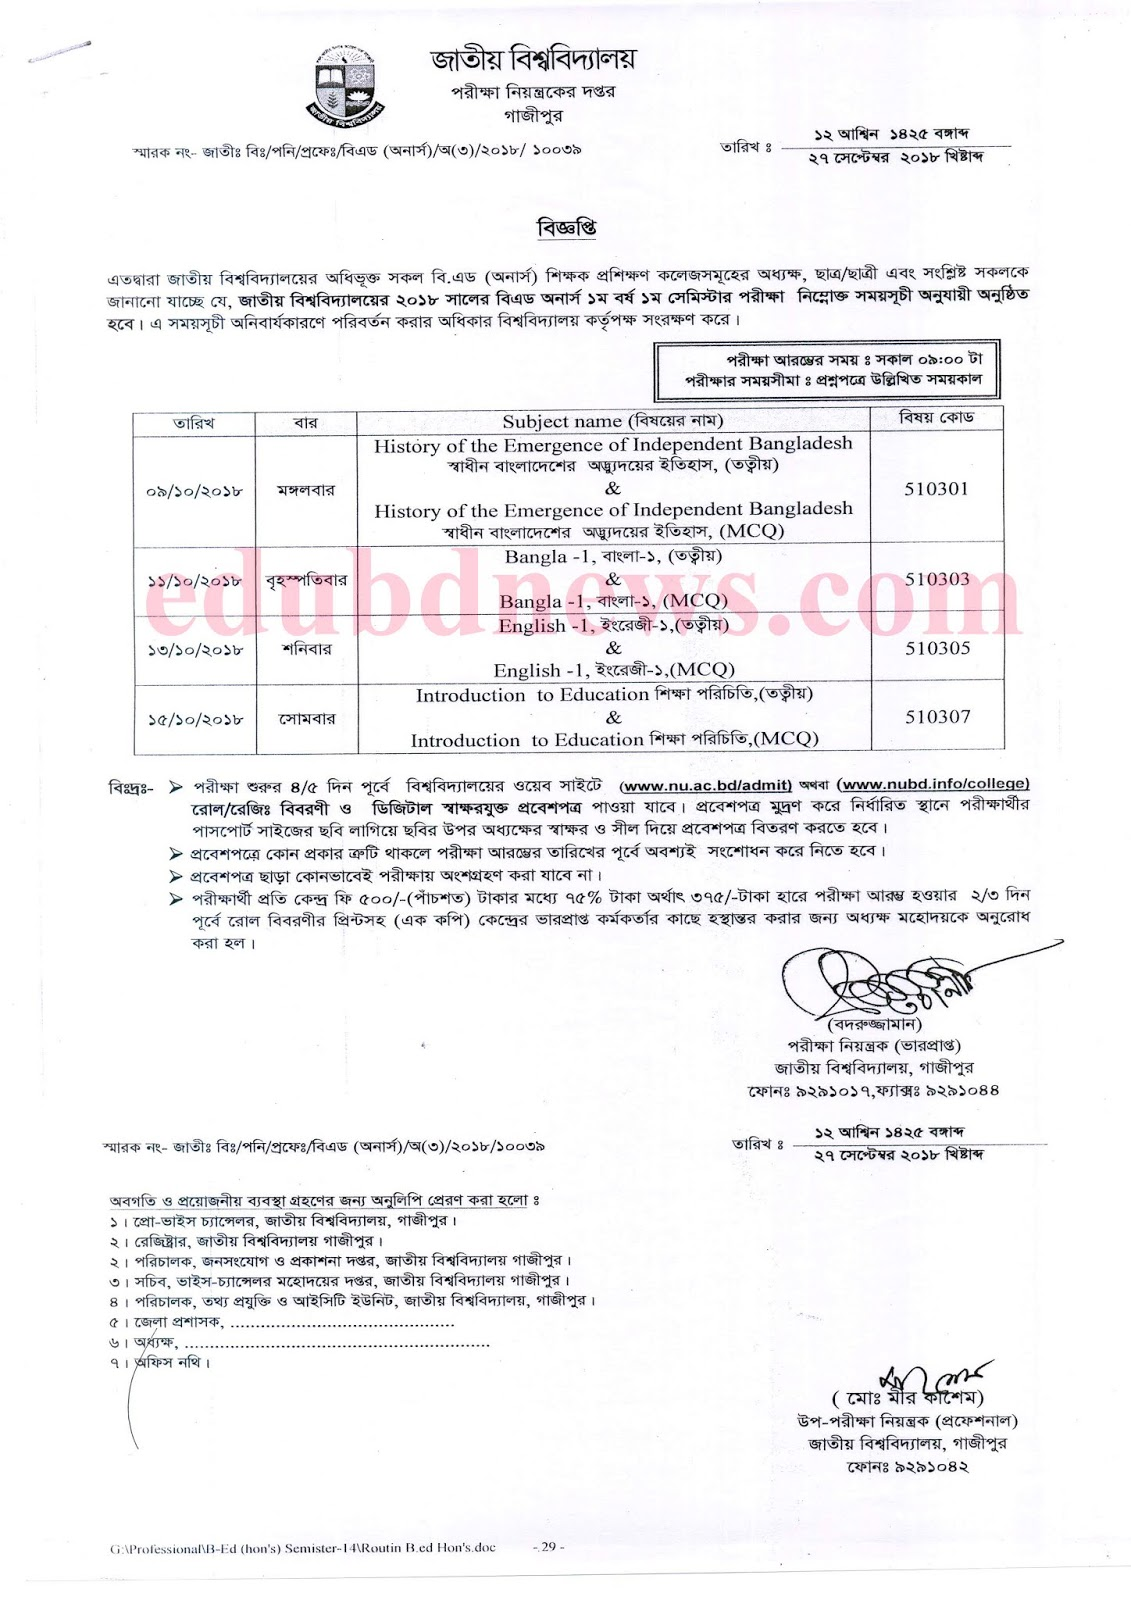 National University B Ed (Honors) First Year 1st semester Exam Routine in 2018